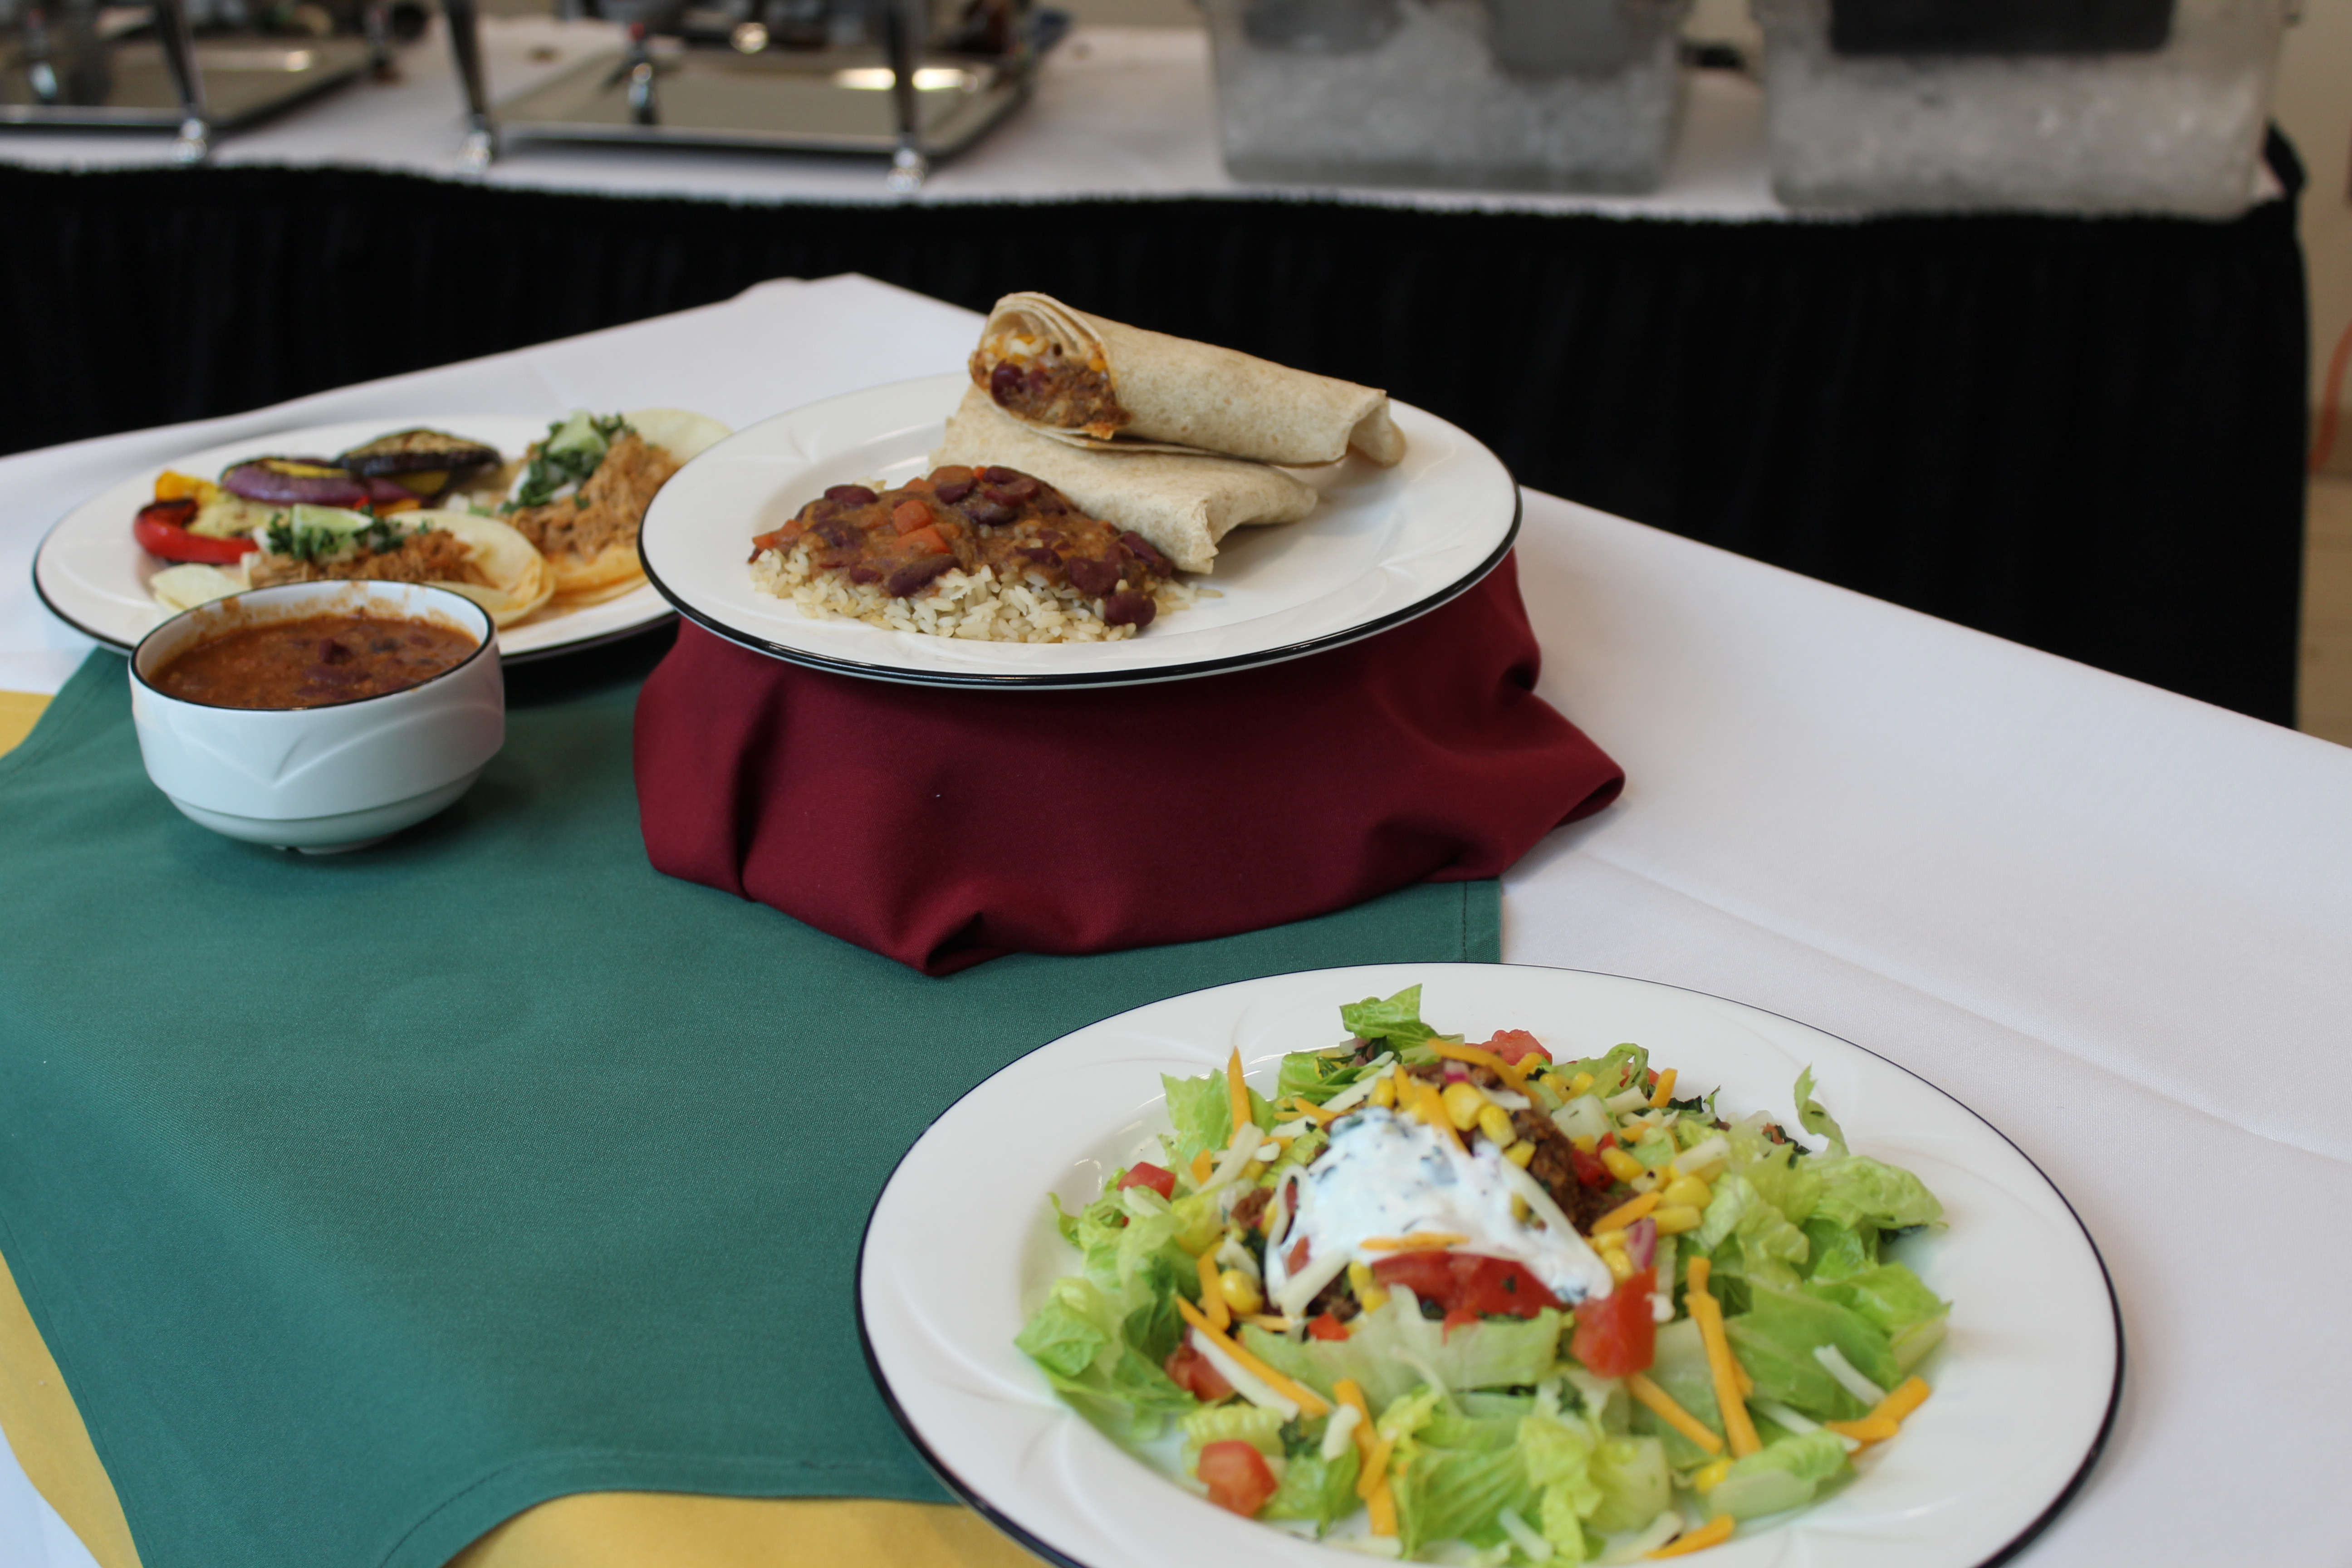 Three plates on a white table cloth with a green cloth napkin. One plate has a salad, the middle plate has burritos, and the third plate has tacos with a bowl of chili.